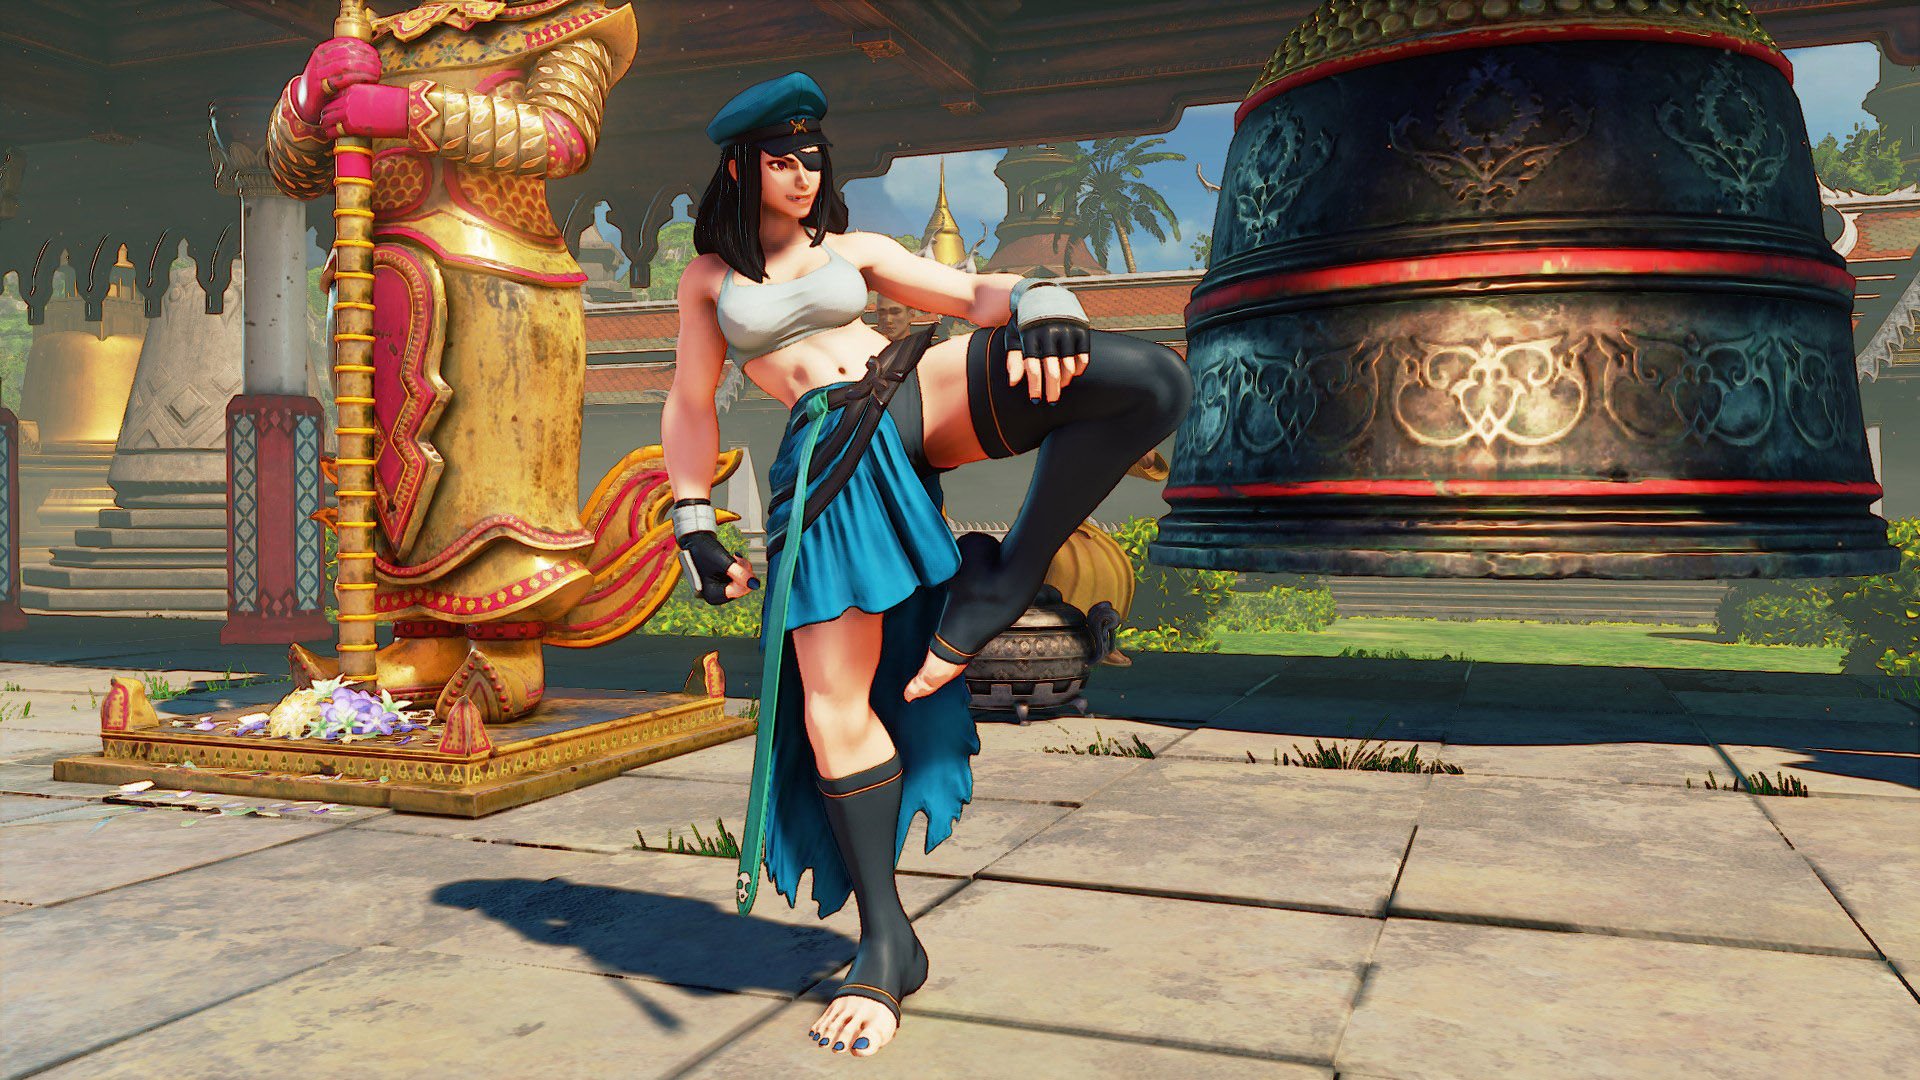 New Juri Costumes 3 out of 6 image gallery